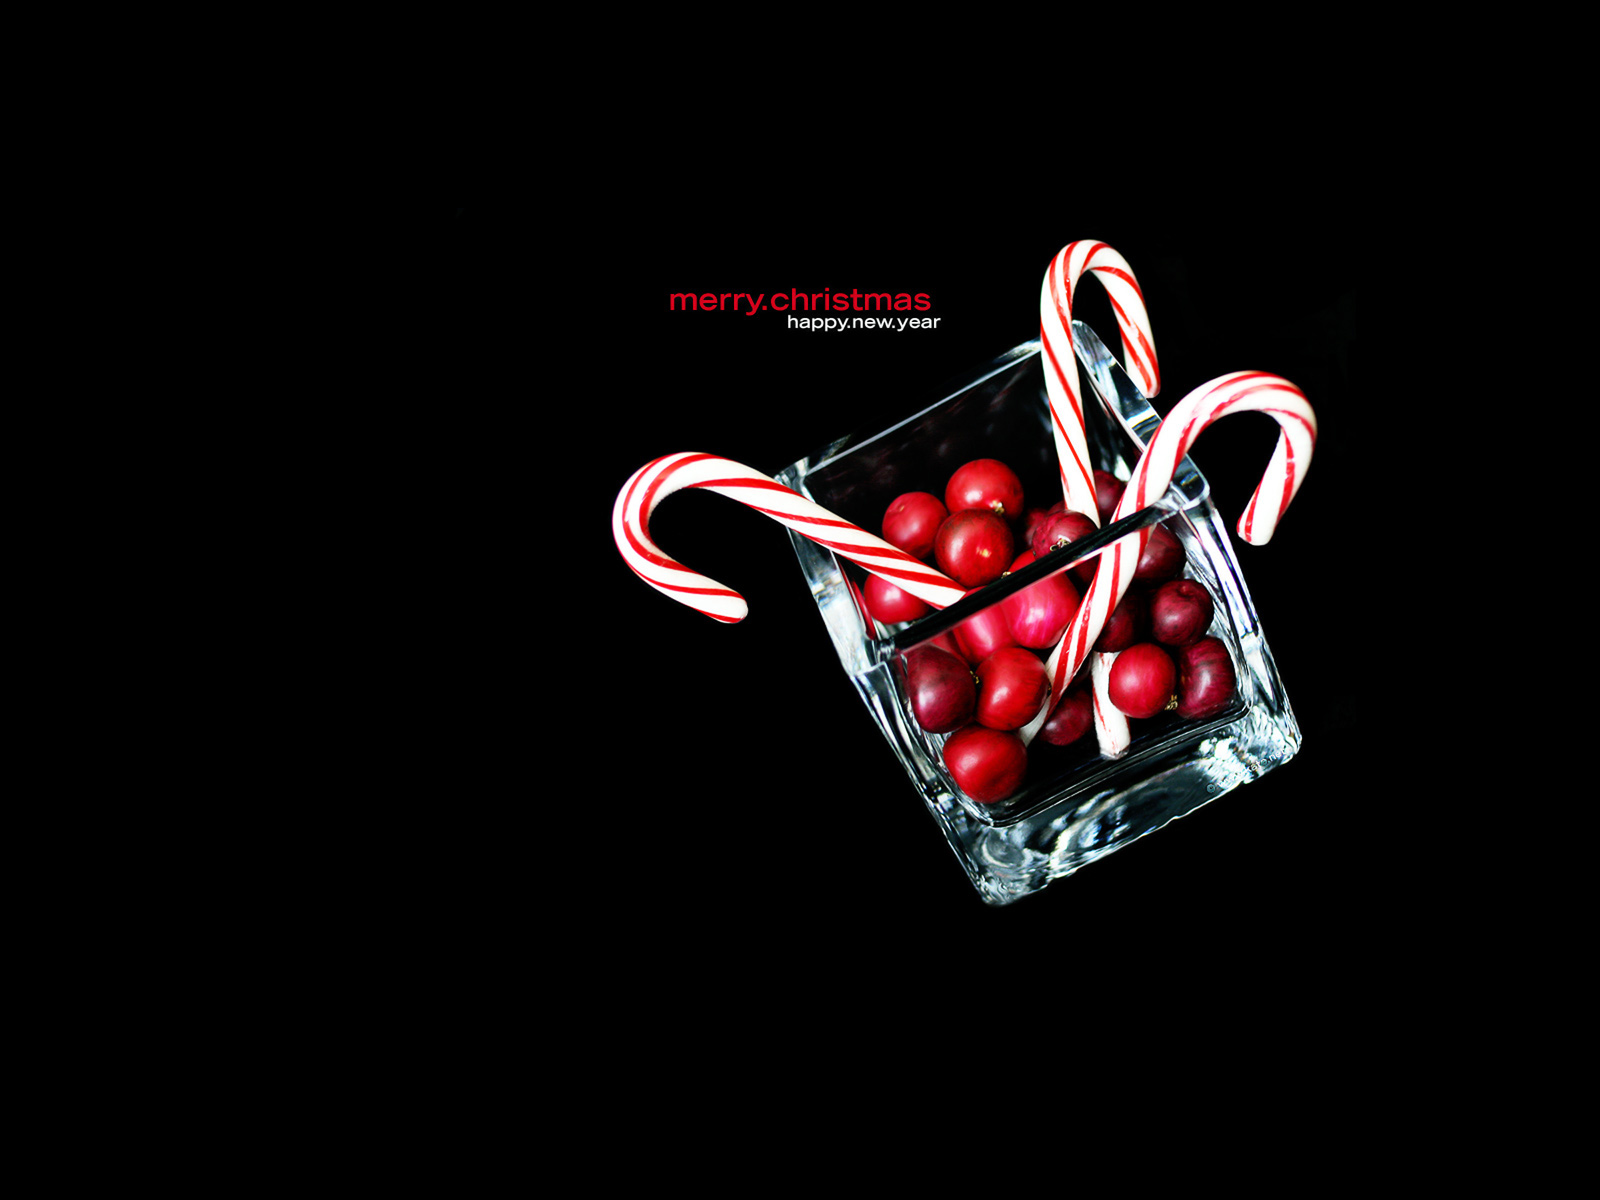 black christmas candy cane wallpaper hd